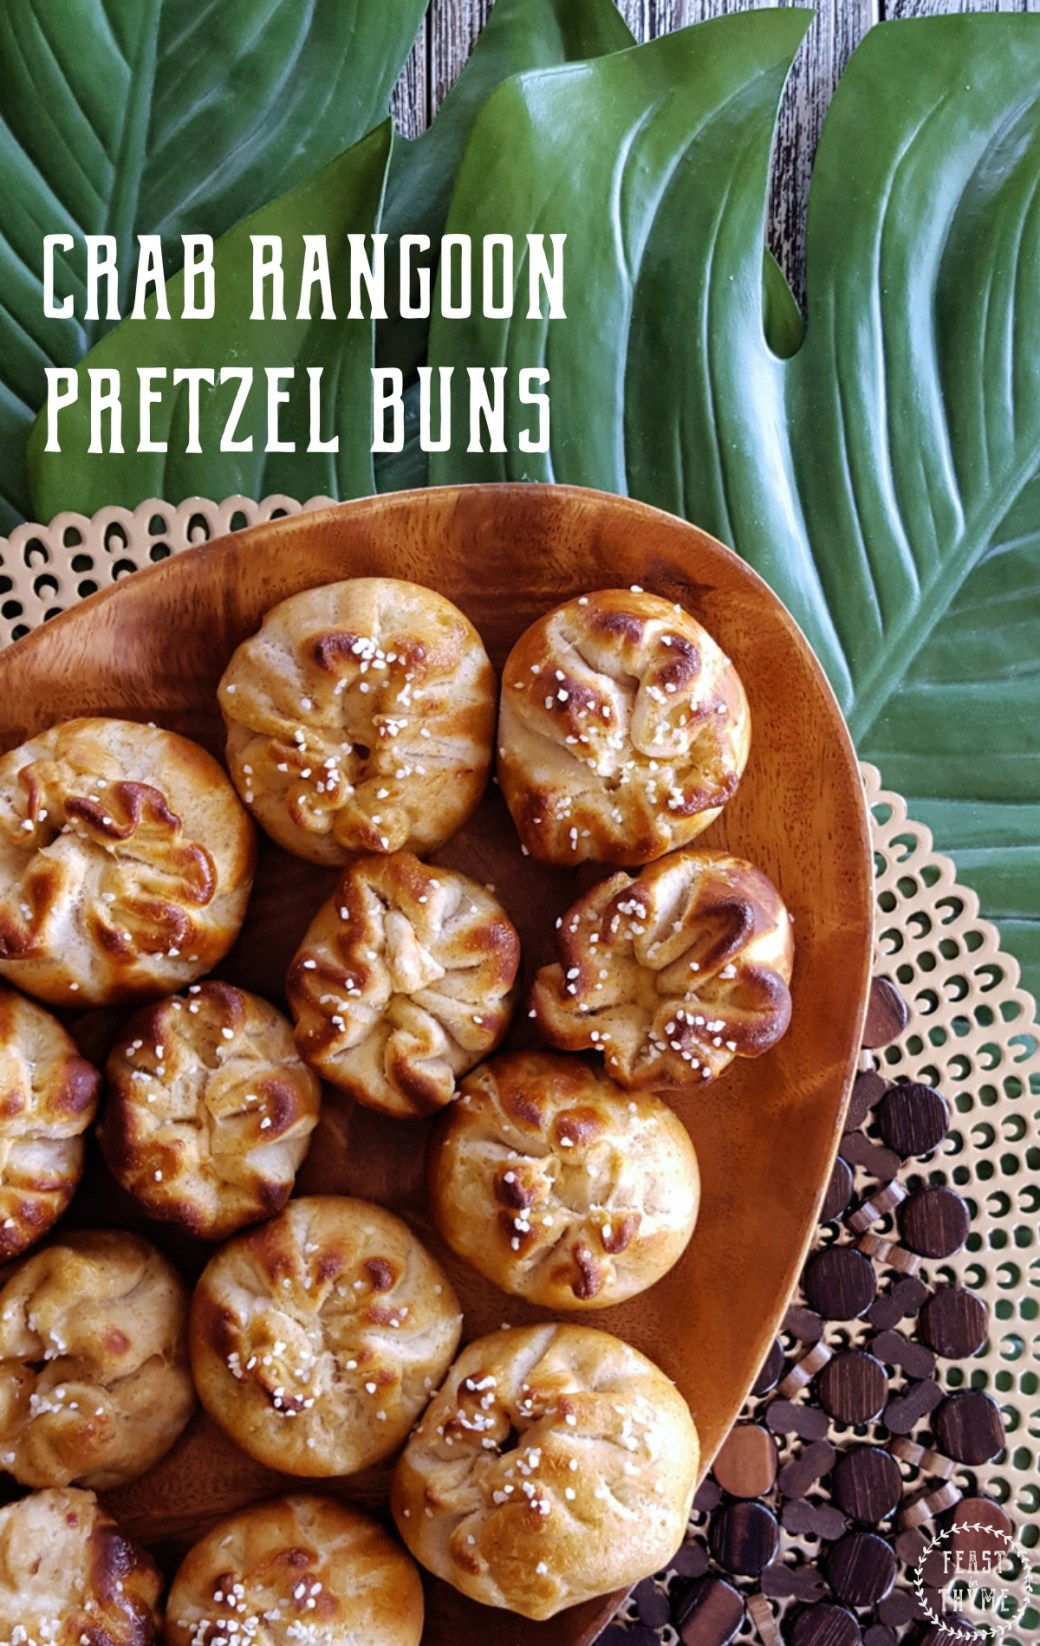 Make Crab Rangoon Pretzel Buns for a delicious & crowd-pleasing addition to any snack time, game day, or movie night menu. #crab #rangoon #appetizer #snacktime | Feastinthyme.com